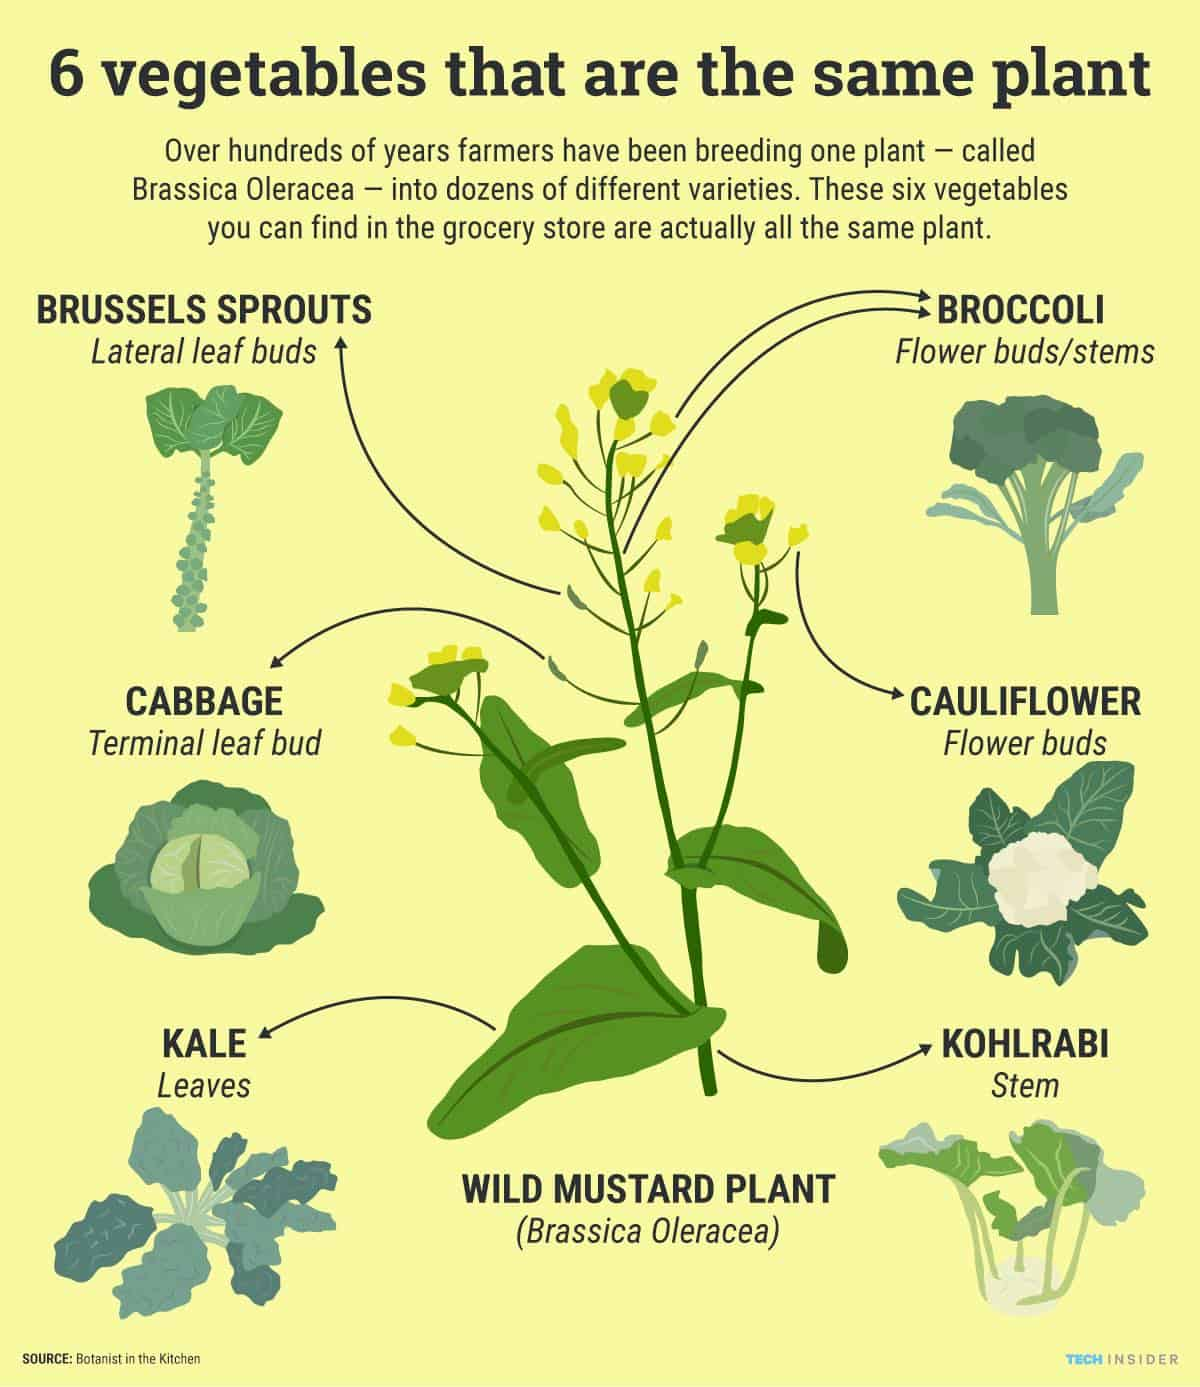 brassica oleracea derived vegetables